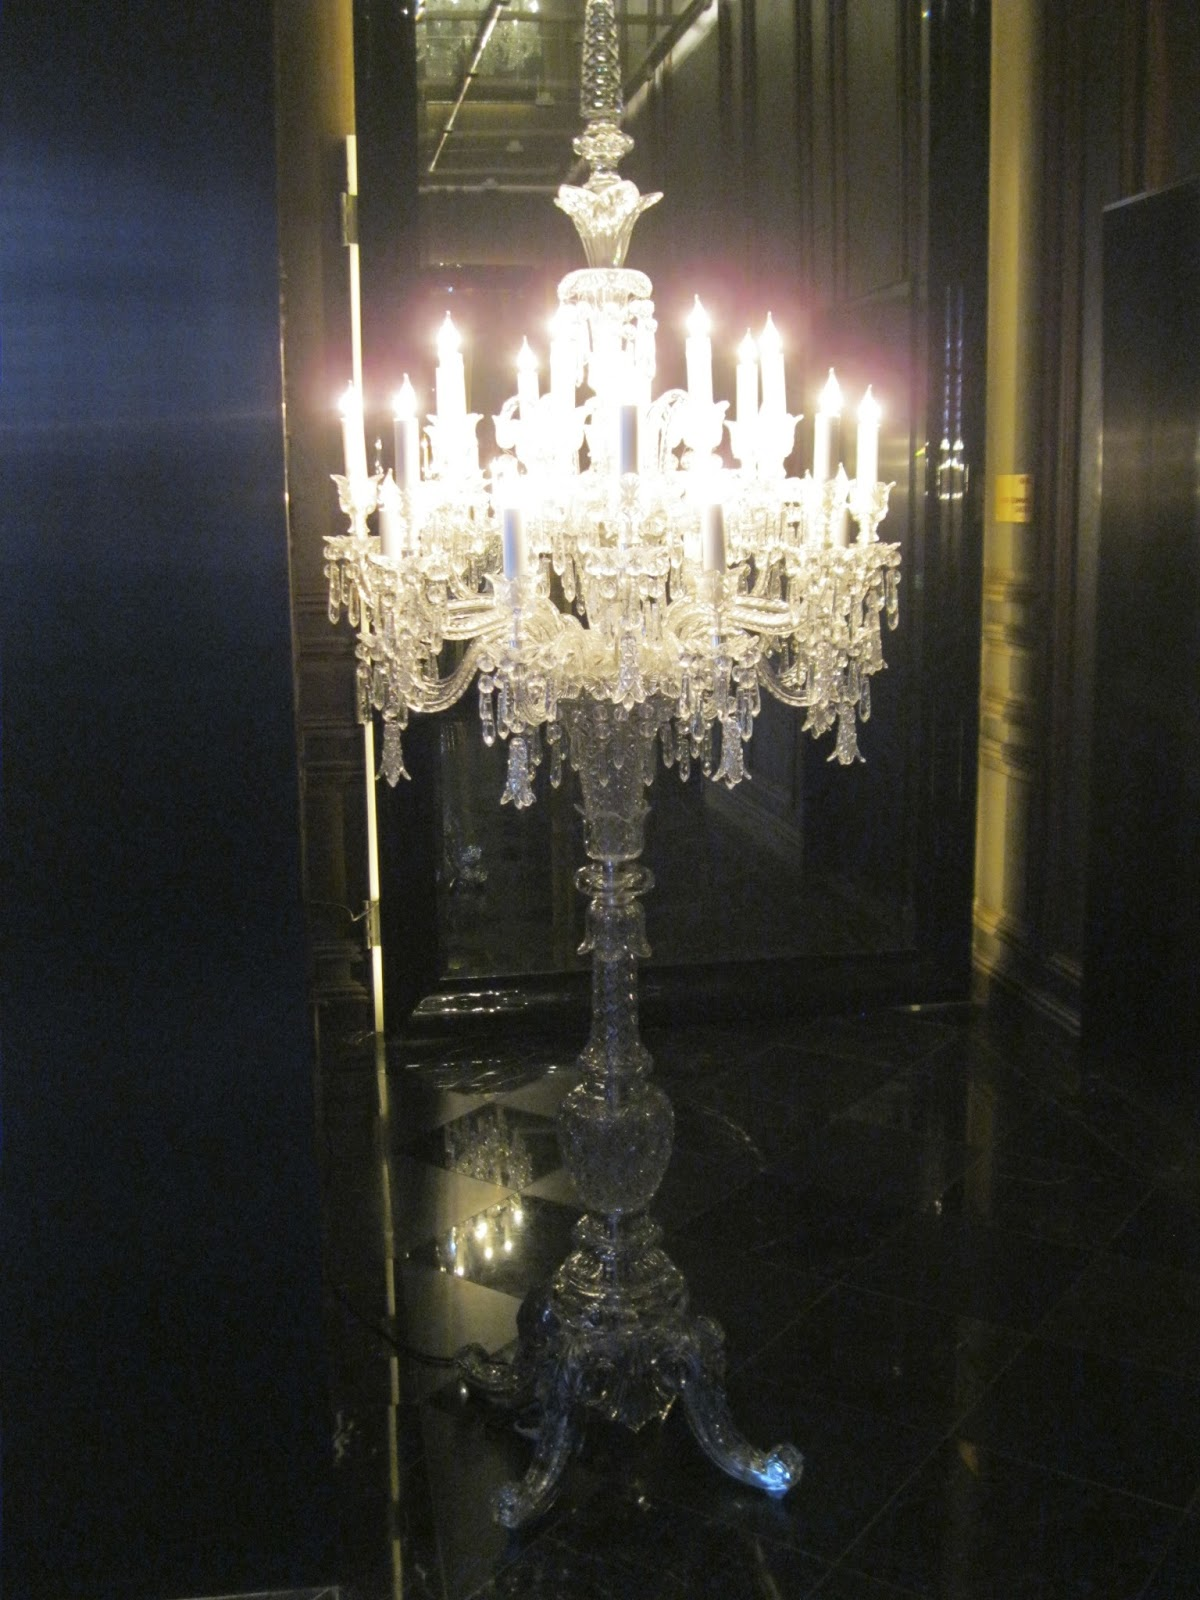 Pandoras box the baccarat hotel tiffany and mackenzie childsnyc the doorman guided us into the building into a small room which was all black with this lovely pedestal chandelier lighting up the small foyer arubaitofo Image collections